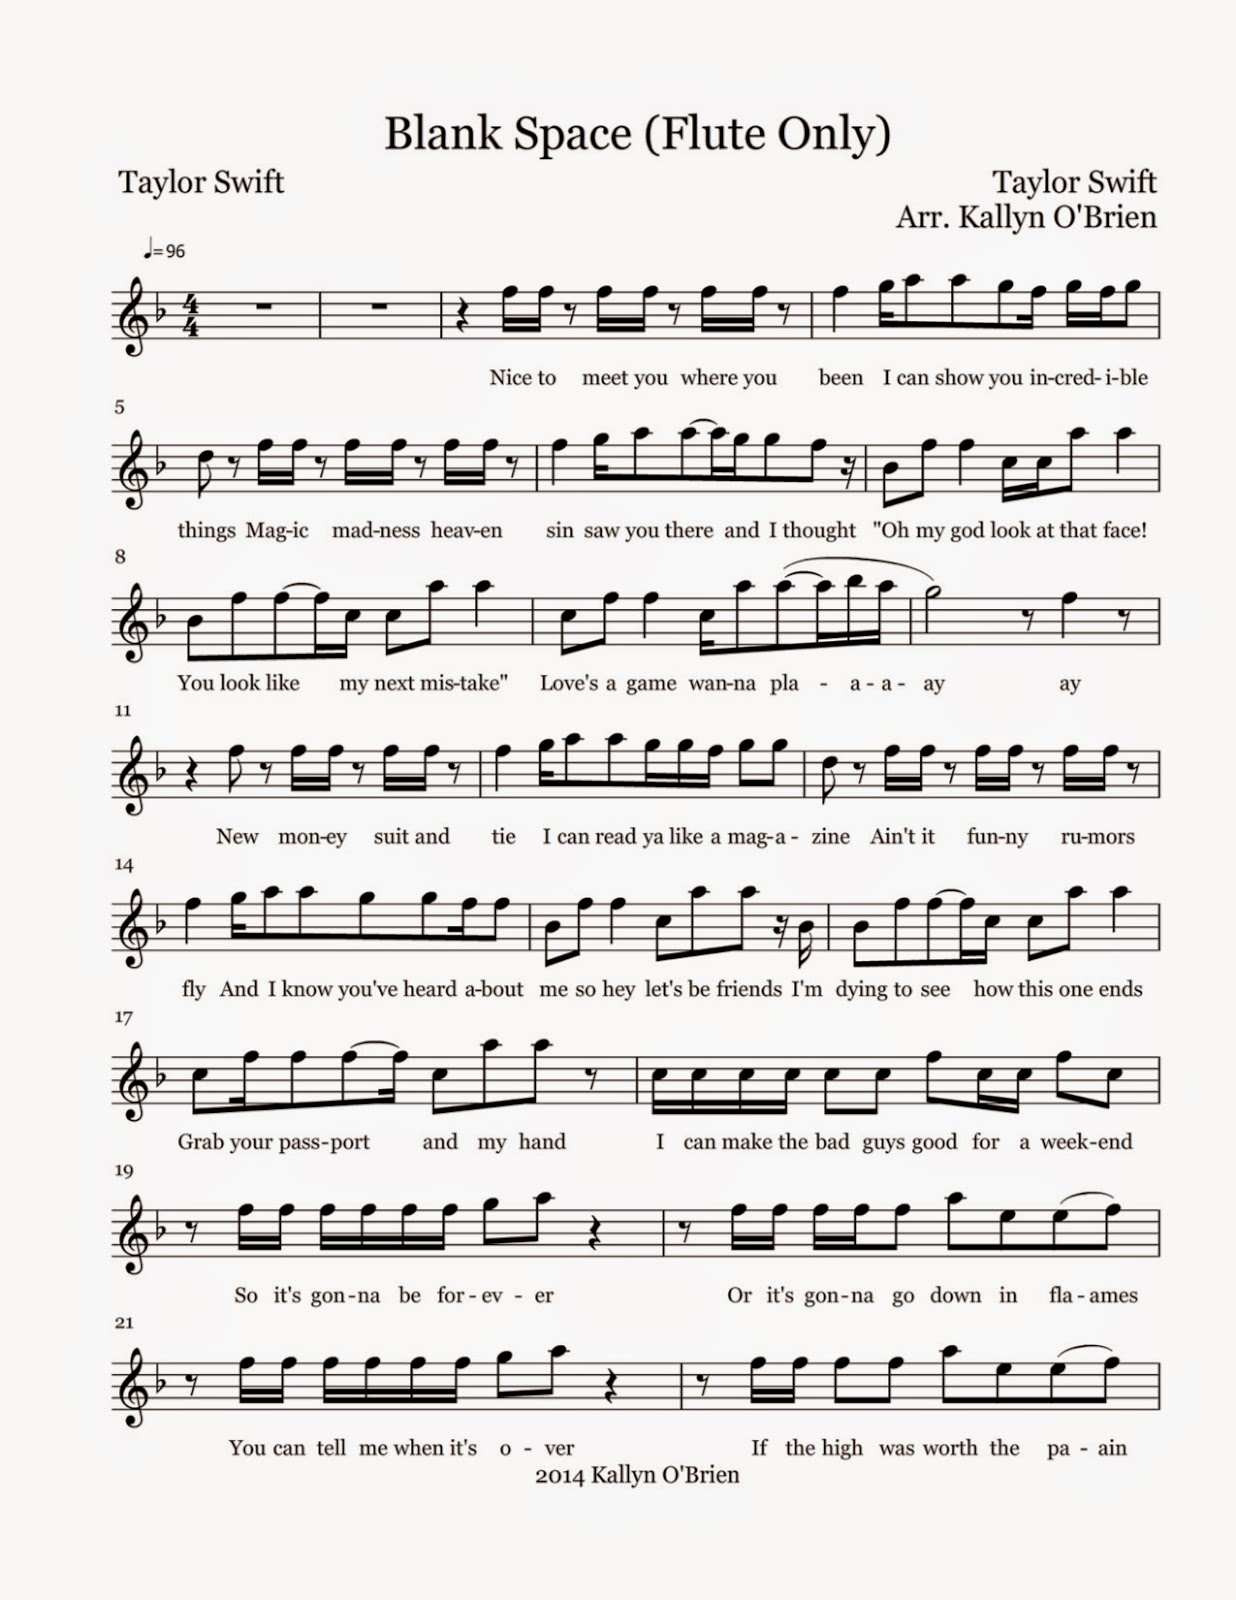 Flute Sheet Music: Blank Space - Sheet Music